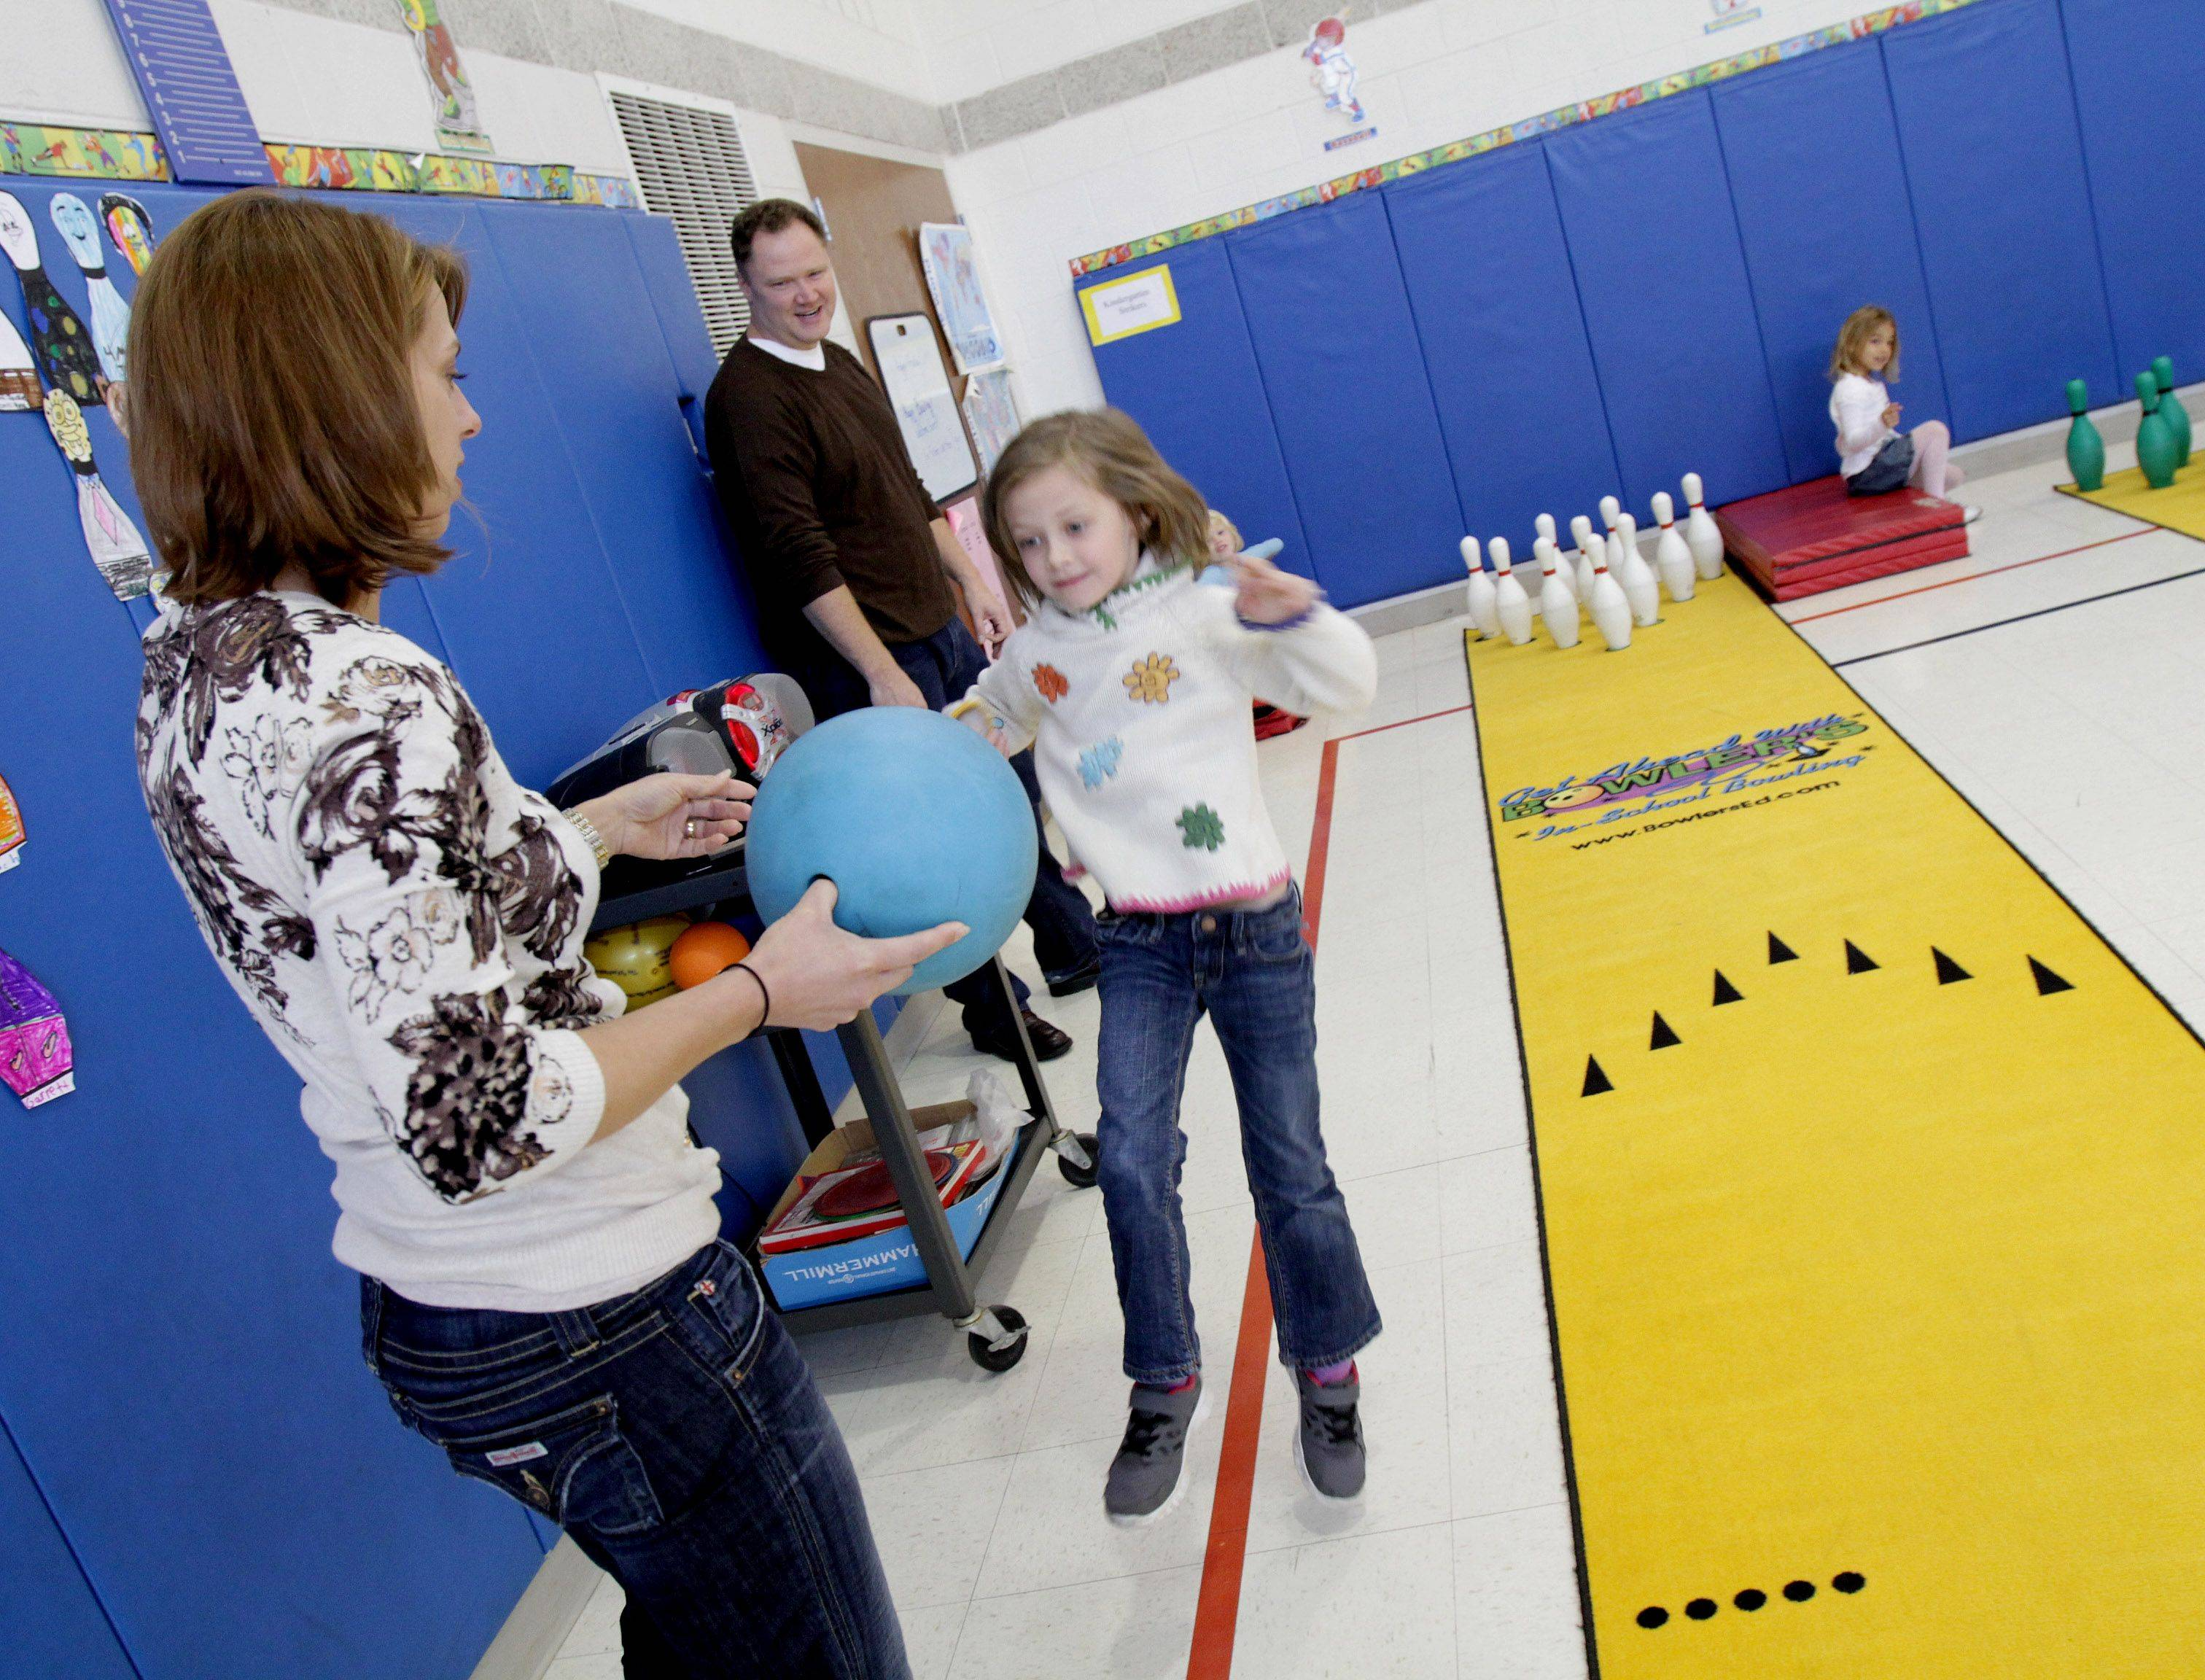 Kindergartner Jennifer Olson gets a ball as she bowls with her parents, Julie and Steve Olson, at Longfellow Elementary School in Wheaton. The bowling lanes, pins and ball were donated by Fox Bowl.